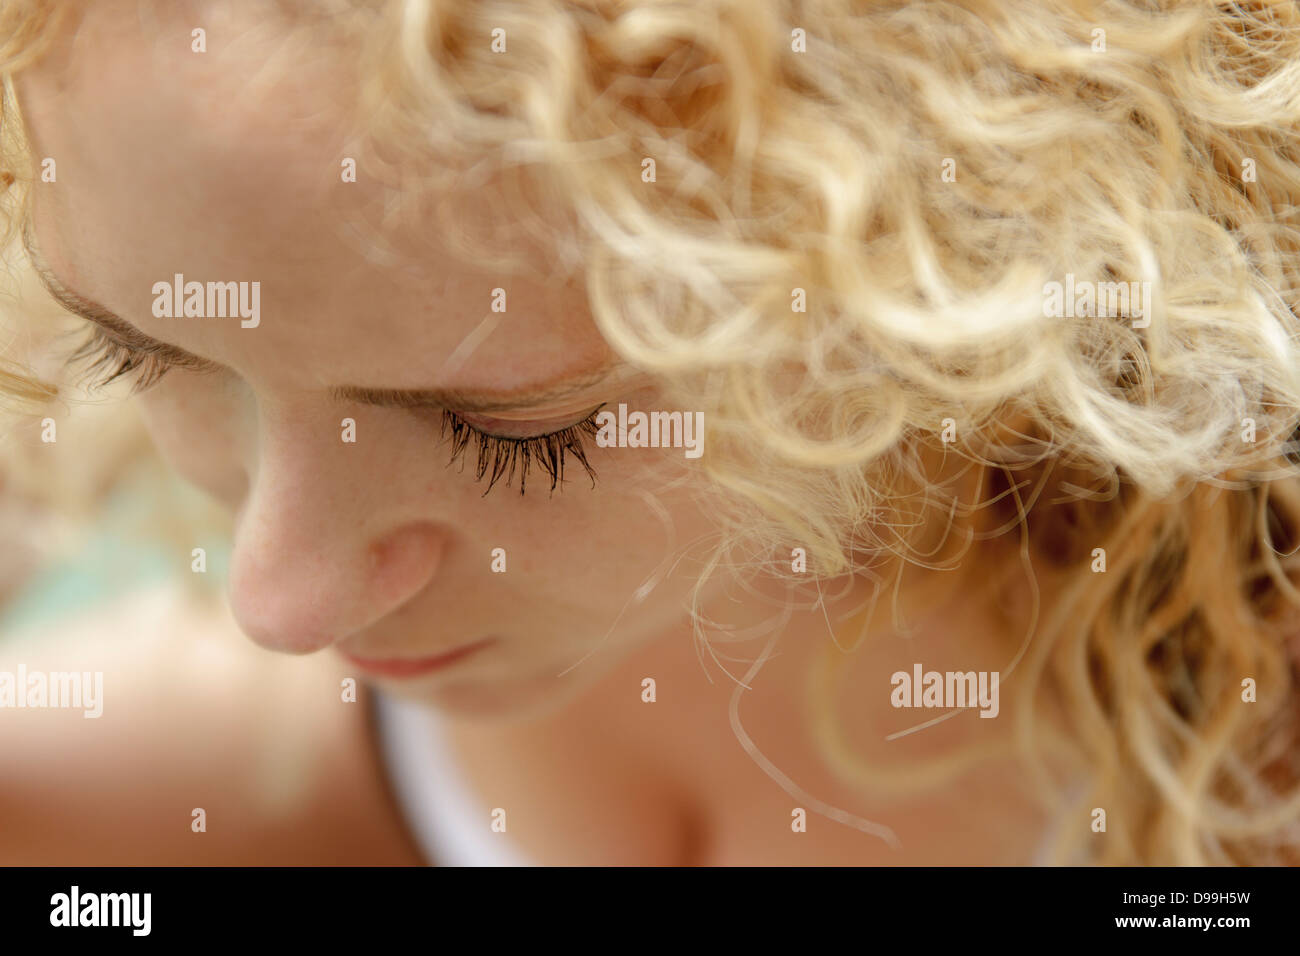 Women in grief - Stock Image